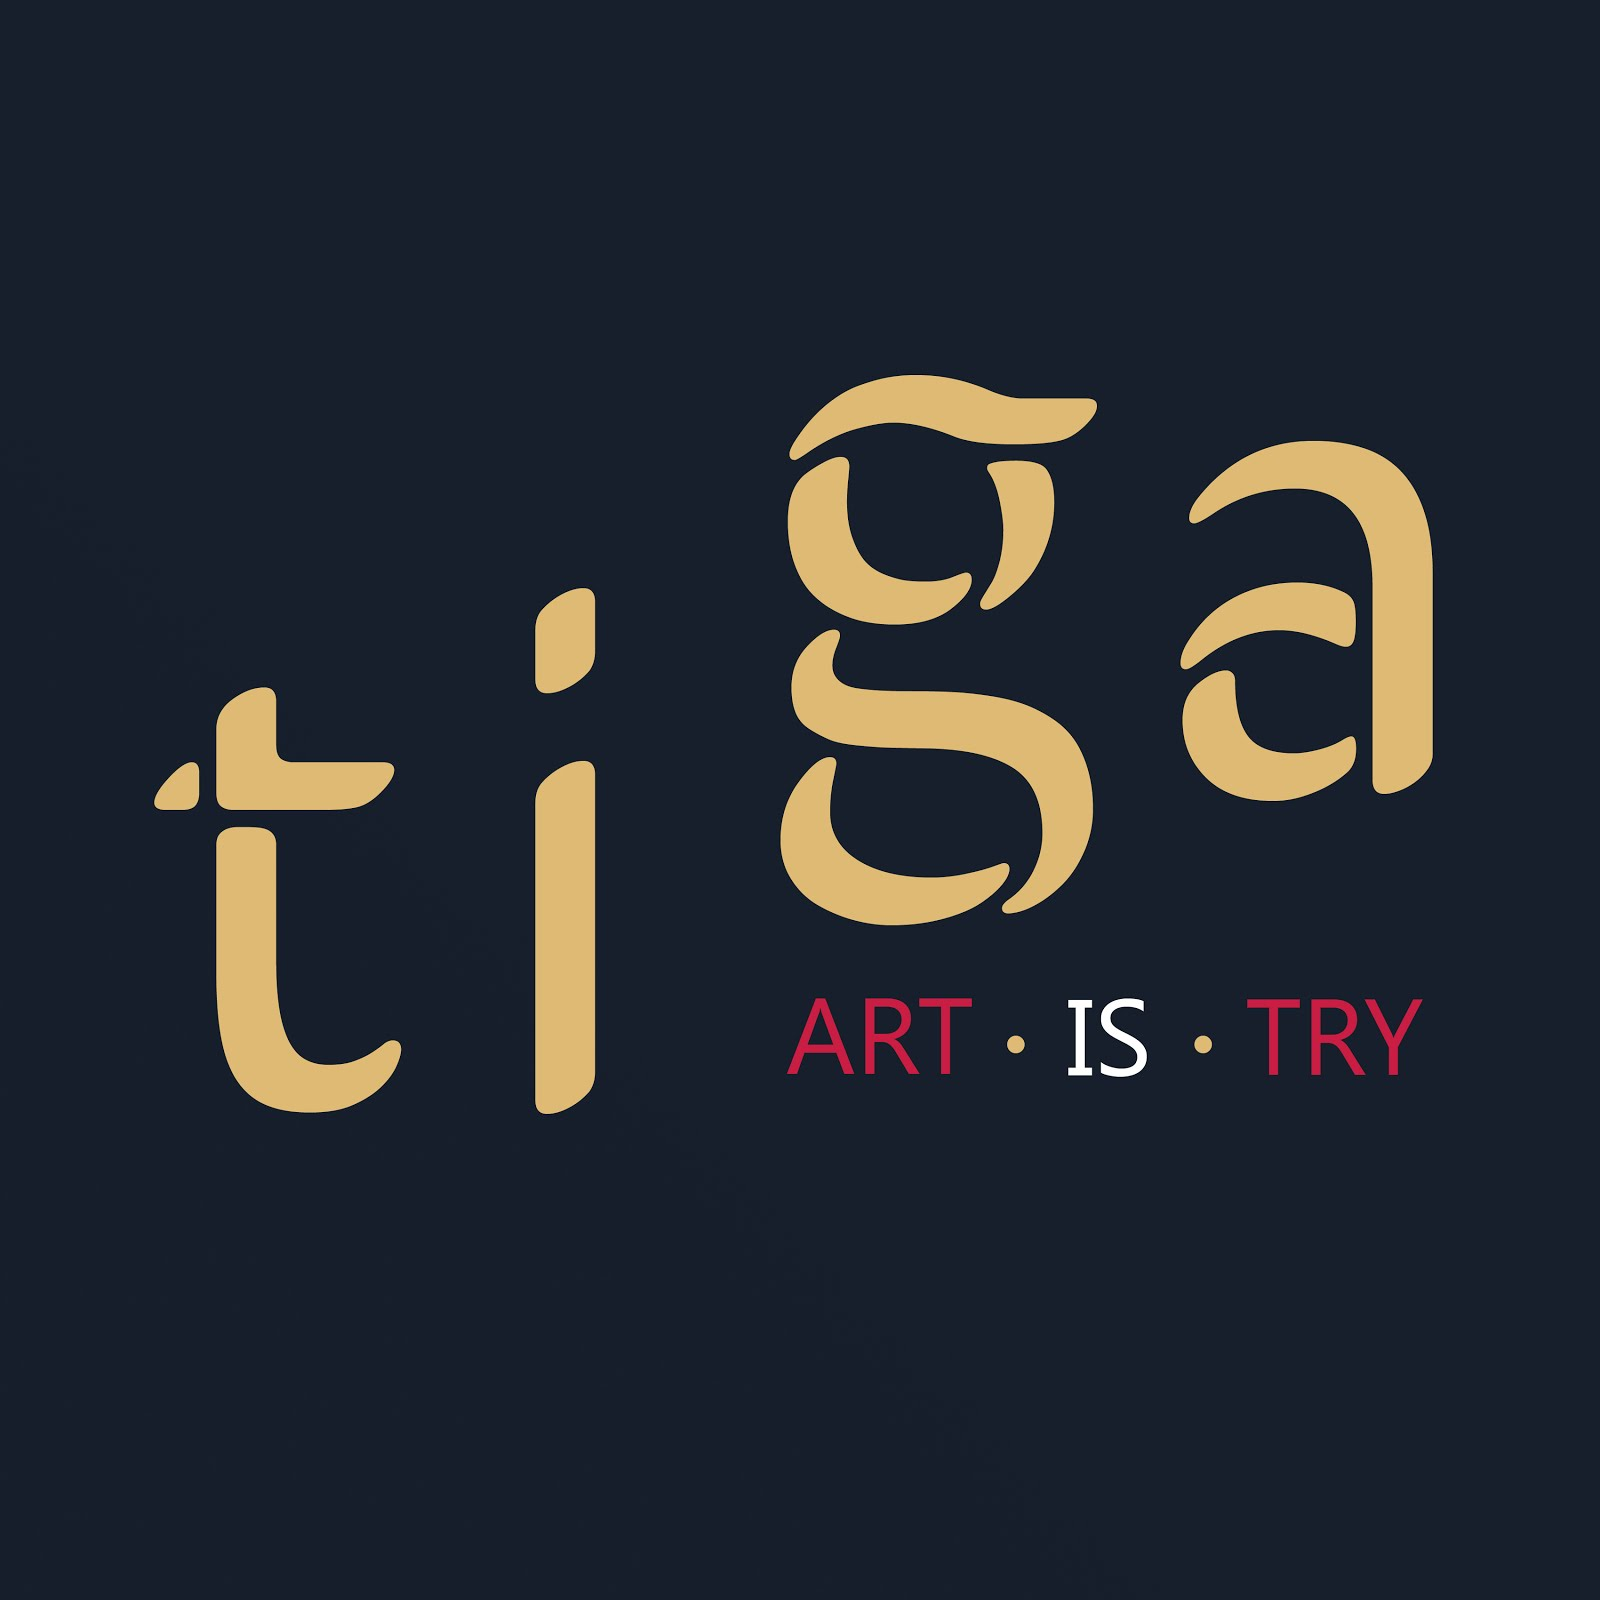 Tiga Art.Is.Try